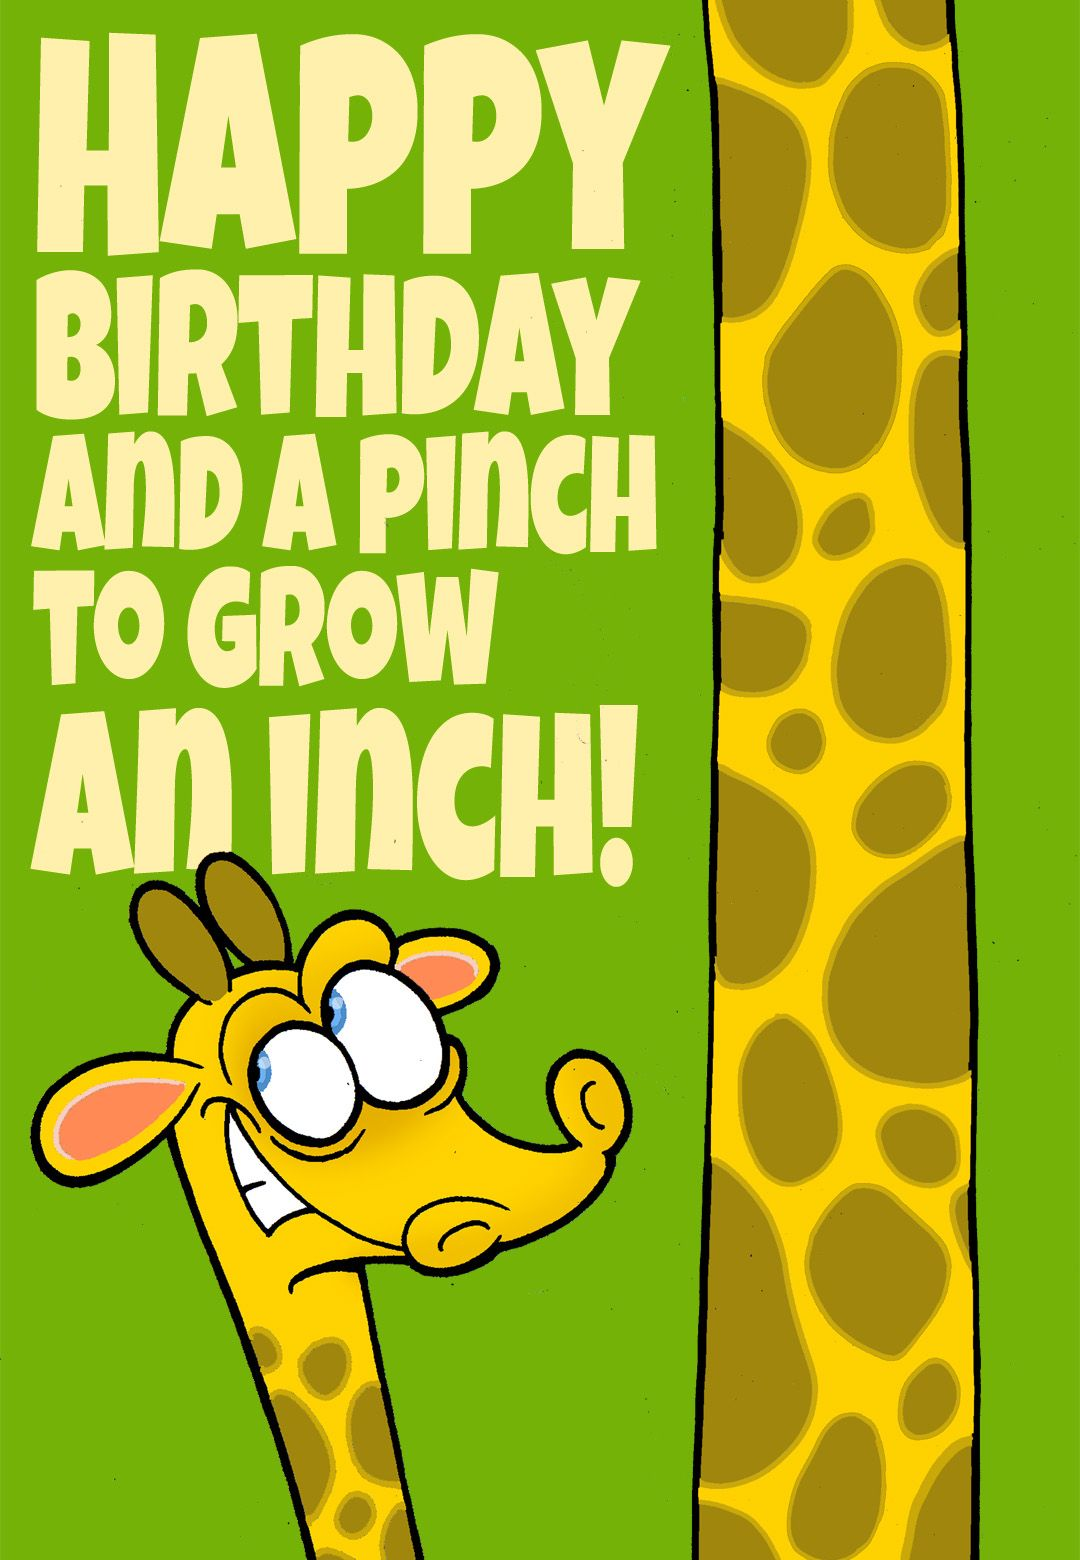 Free Printable A Pinch To Grow An Inch Greeting Card